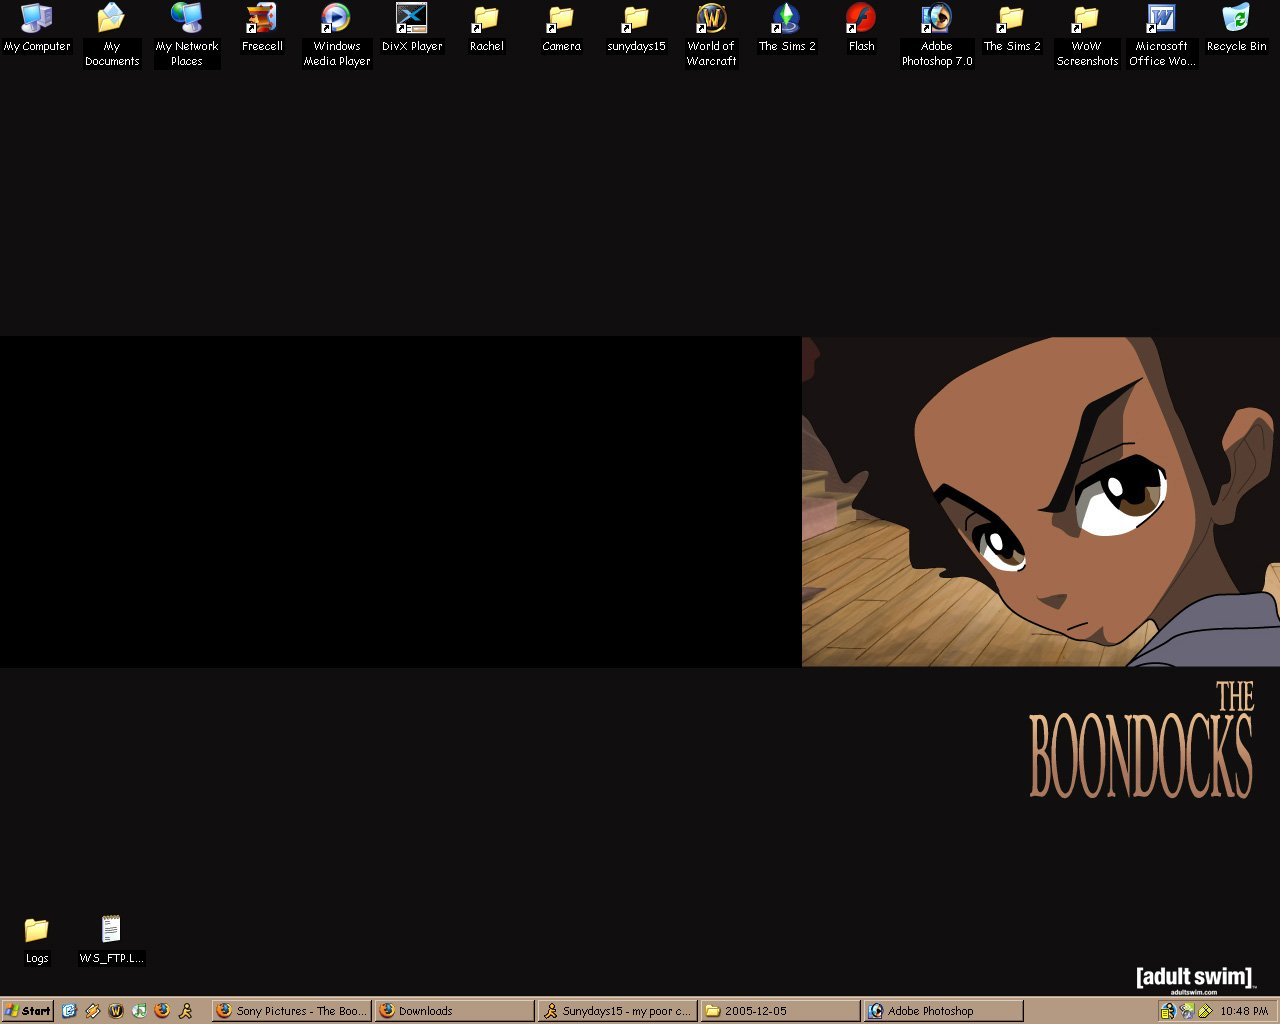 Boondocks Wallpaper by sunydays15 on deviantART 1280x1024